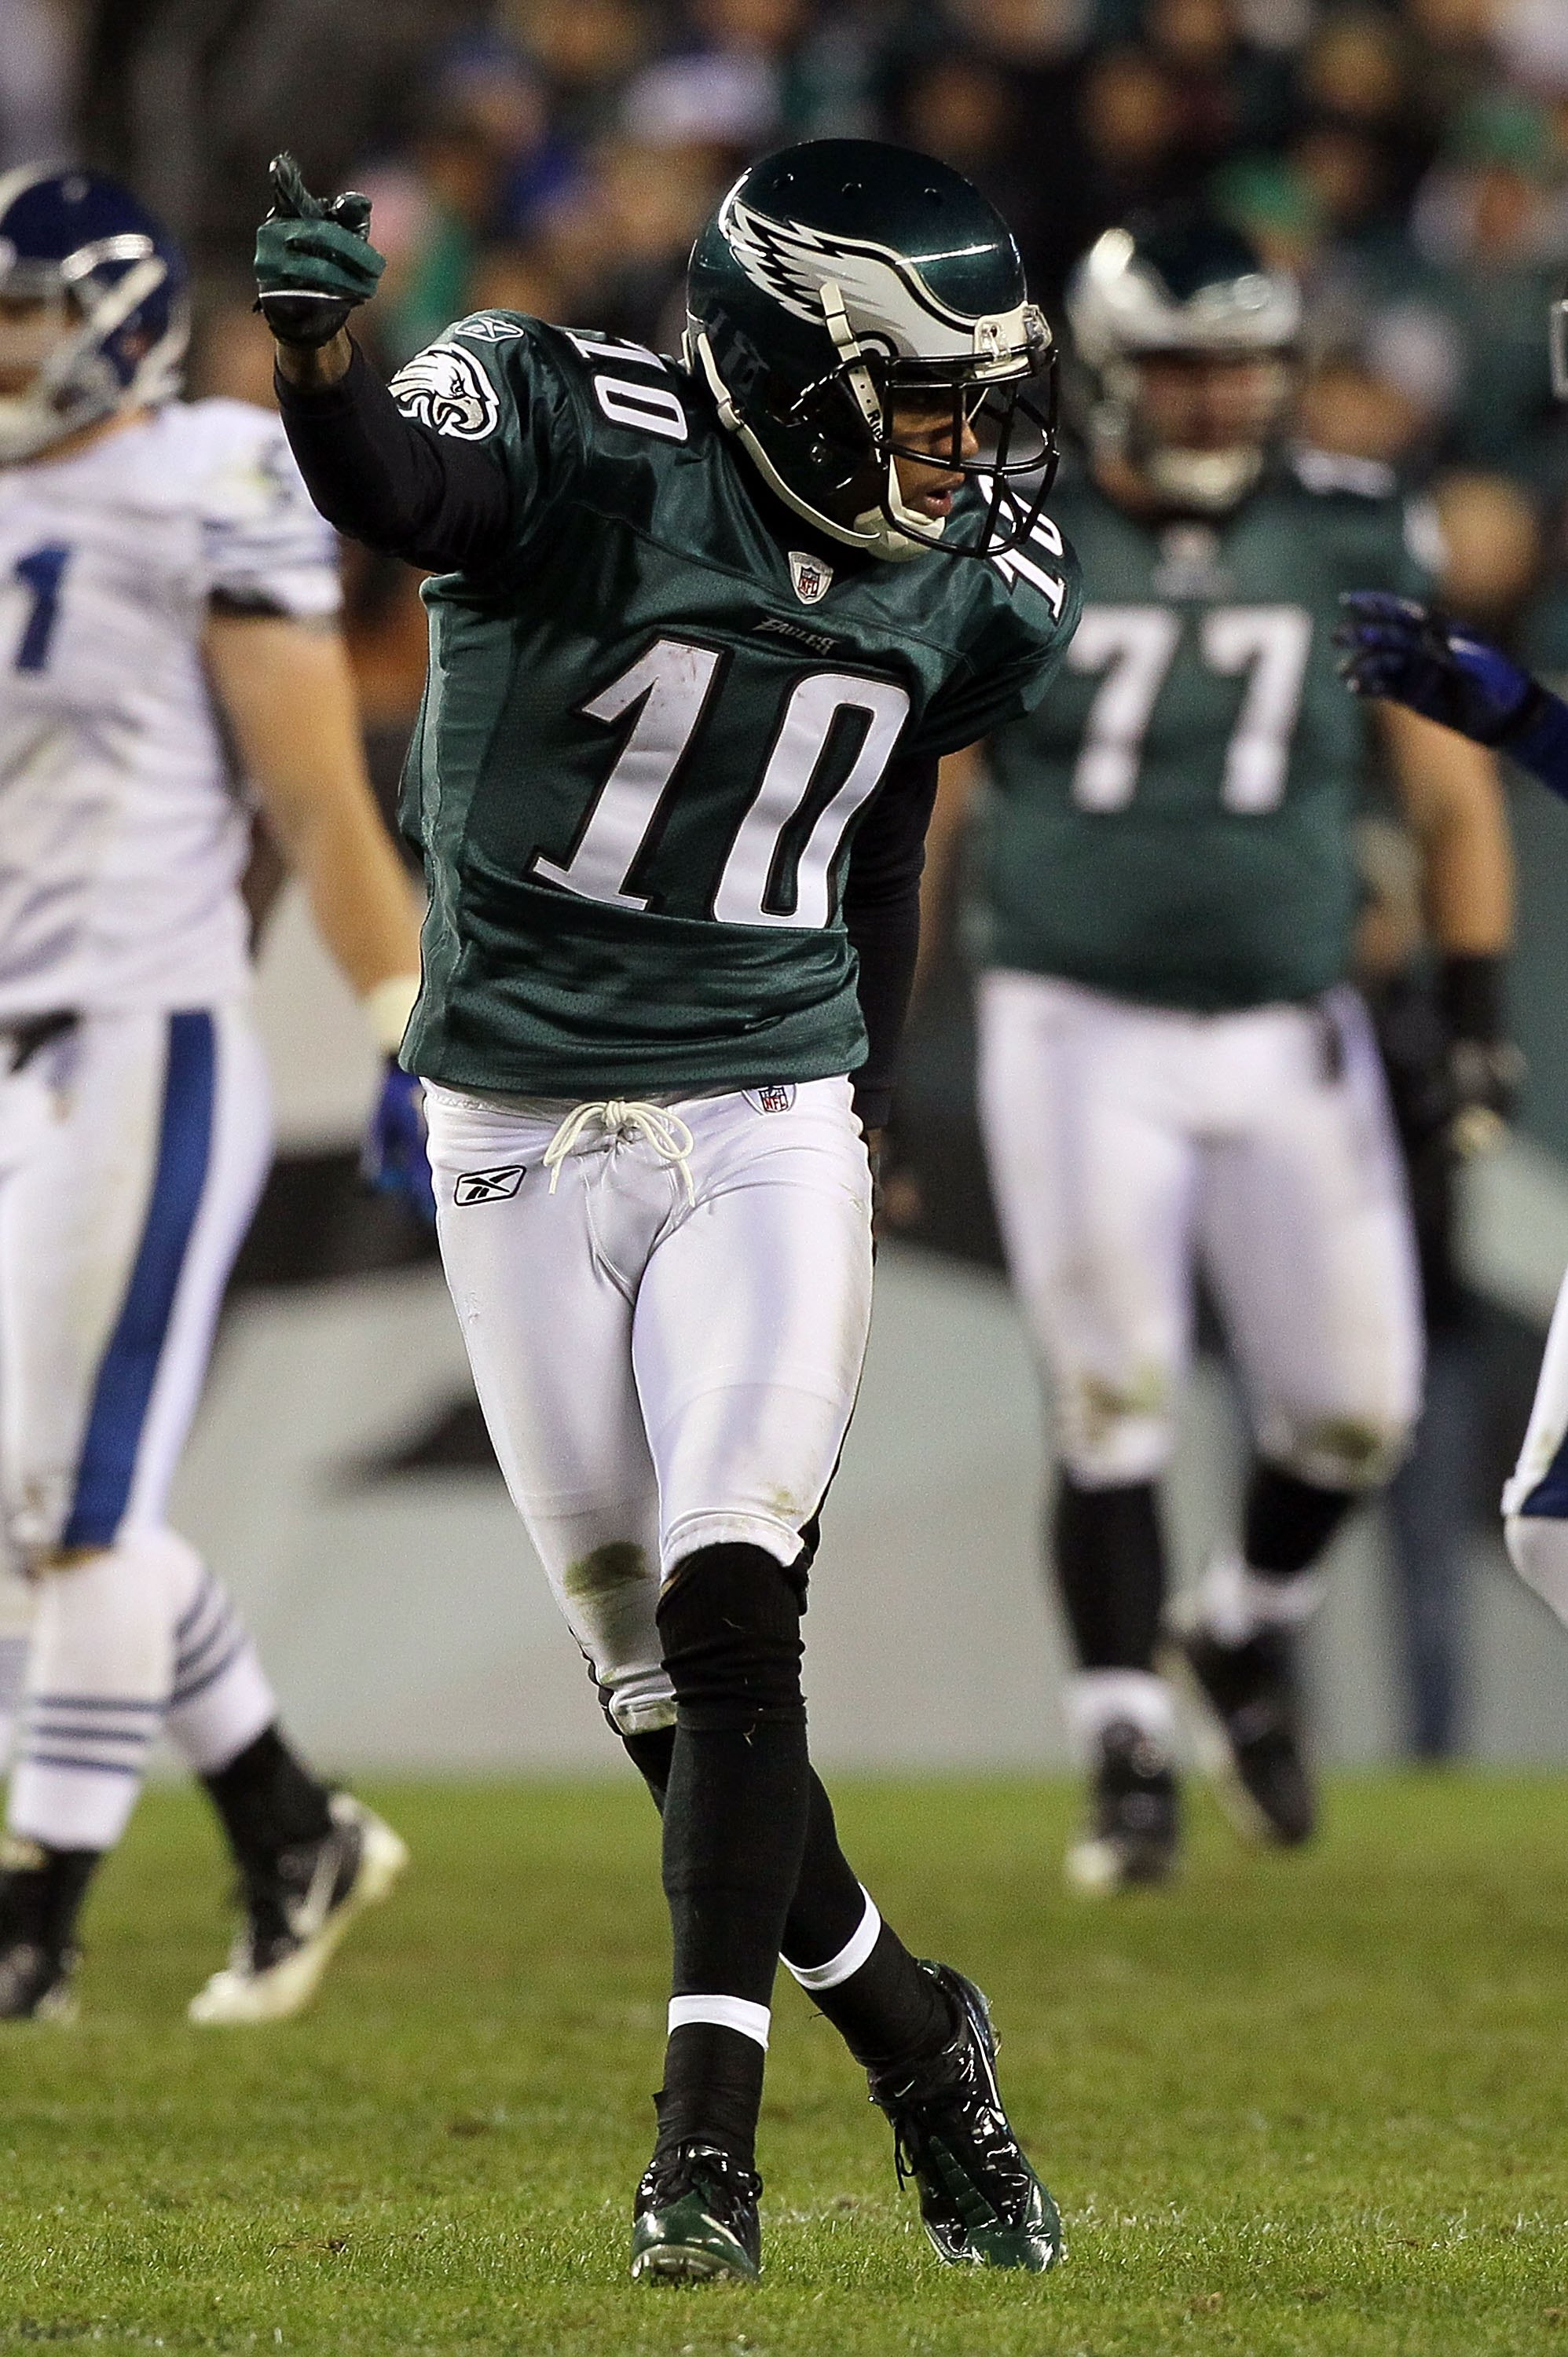 PHILADELPHIA - NOVEMBER 07:  DeSean Jackson #10 of the Philadelphia Eagles against the Indianapolis Colts on November 7, 2010 at Lincoln Financial Field in Philadelphia, Pennsylvania. The Eagles defeated the Colts 26-24.  (Photo by Jim McIsaac/Getty Image